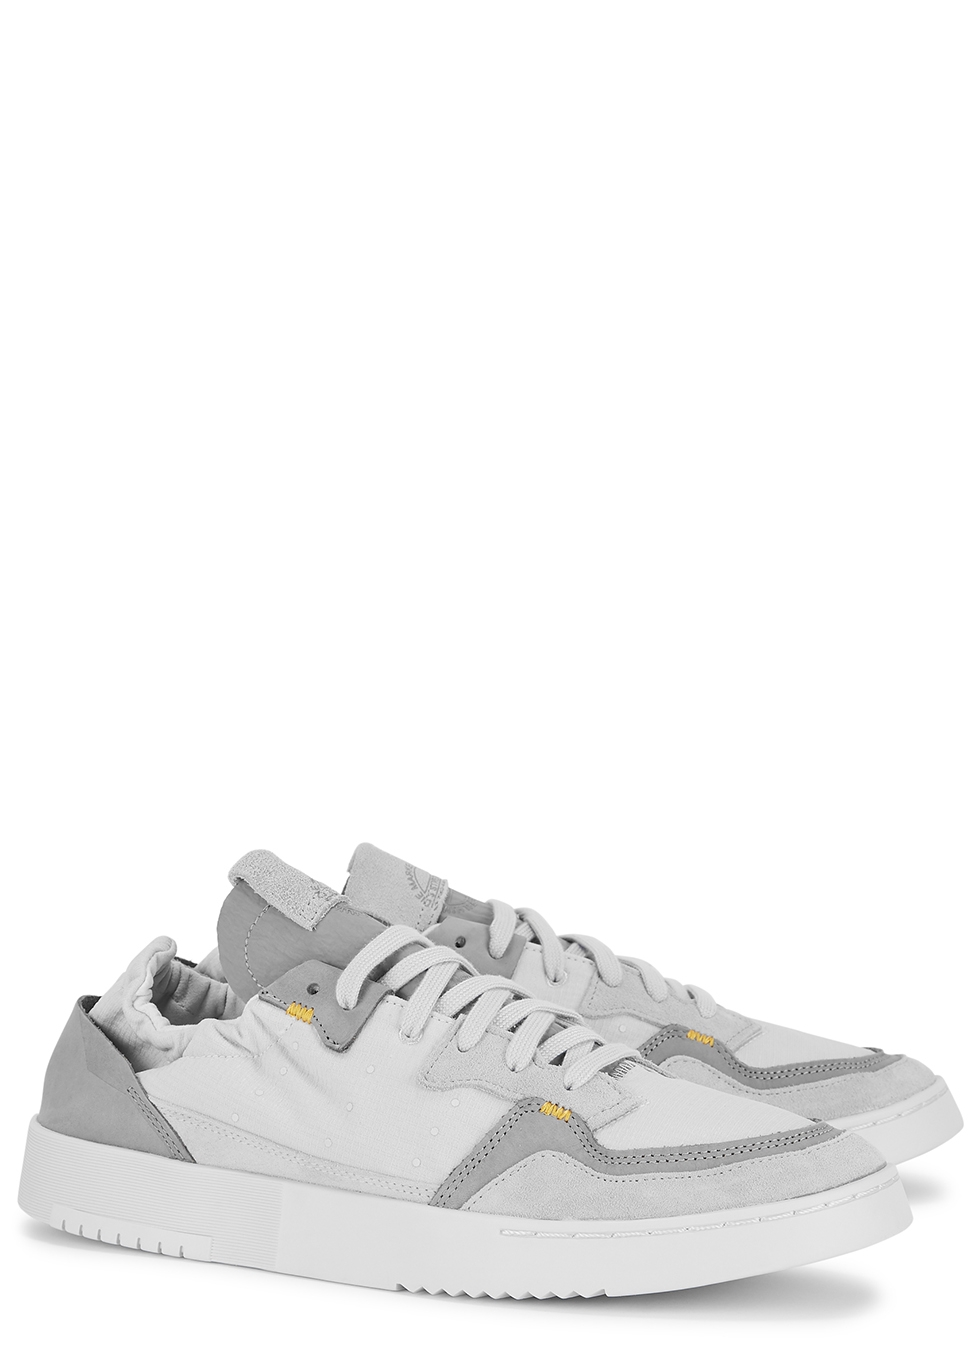 X Bed J.W. Ford Supercourt panelled sneakers